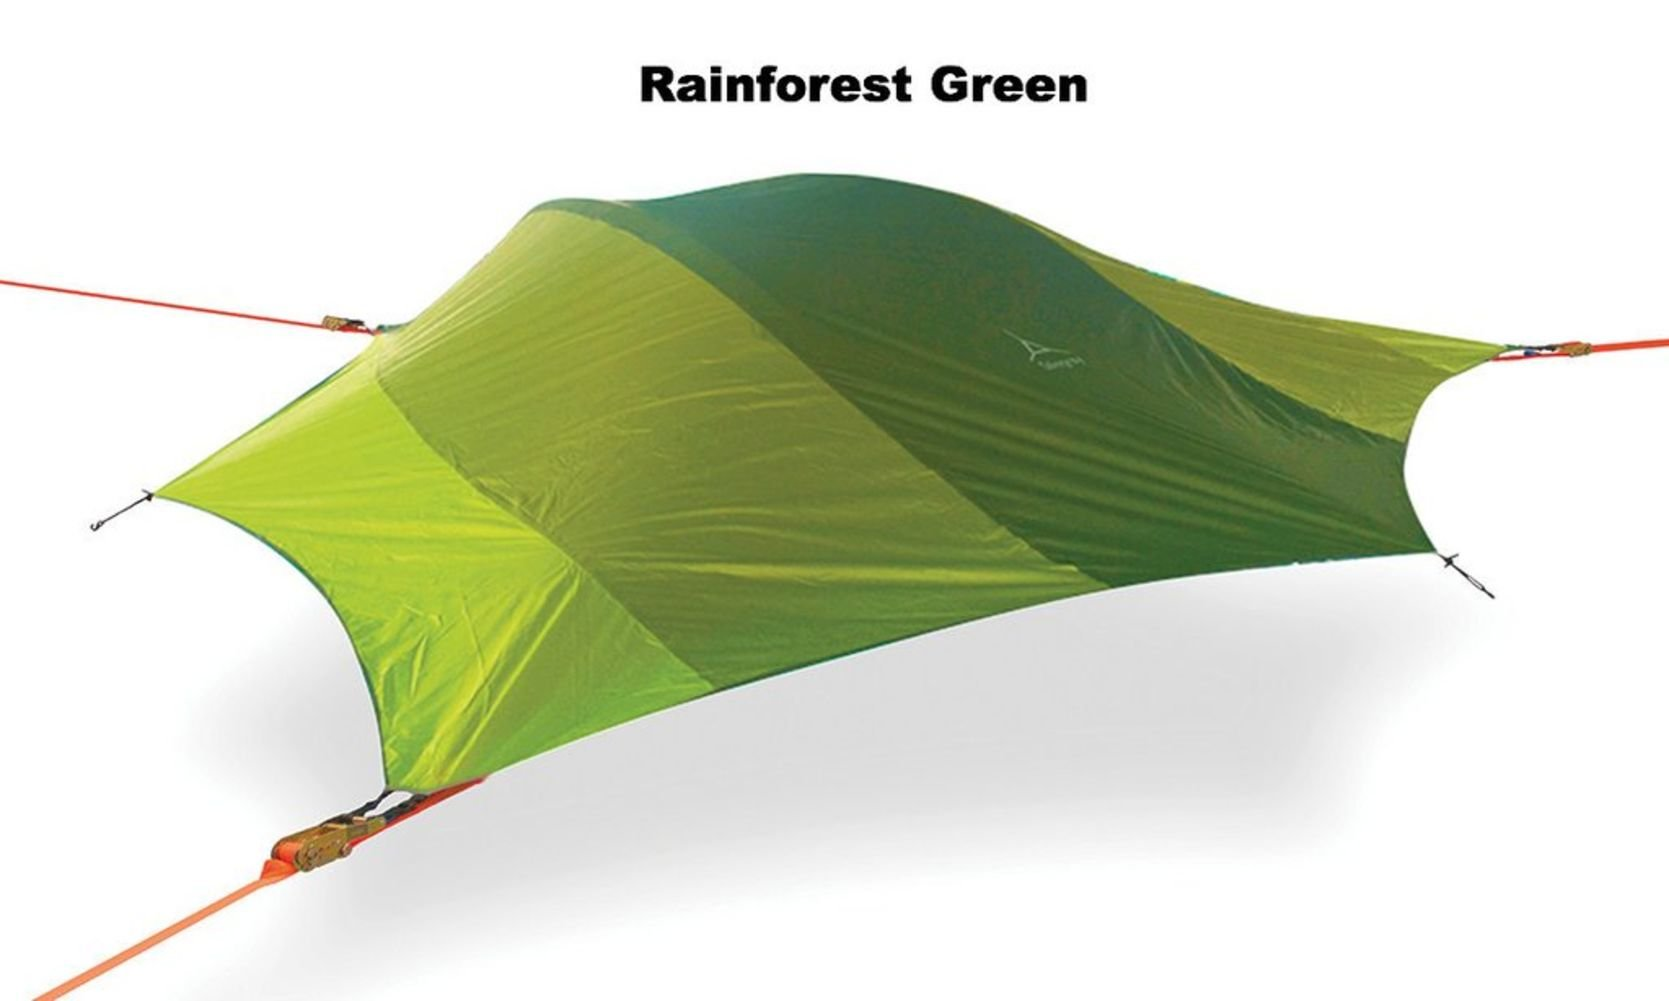 Tentsile Stingray 3-Person All-Season Suspended Camping Tree Tent (Rain Forest Green)